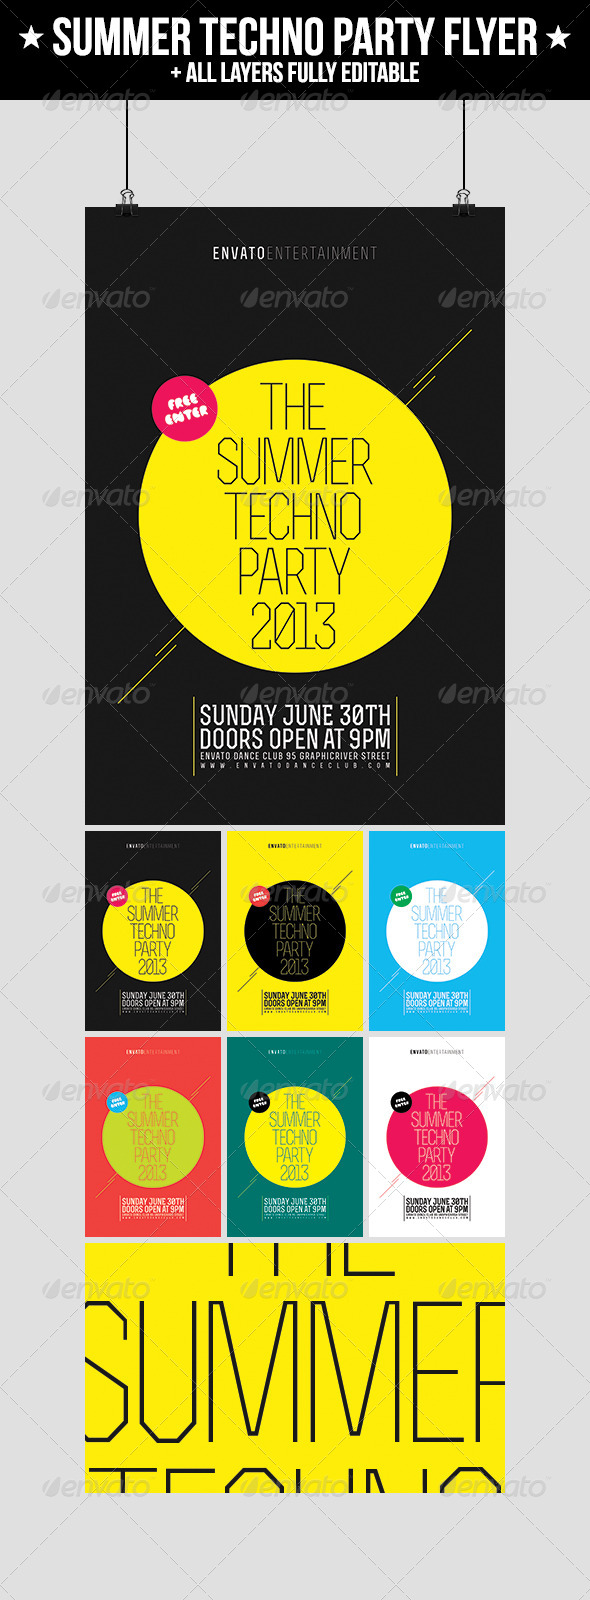 Summer Techno Party Flyer - Clubs & Parties Events